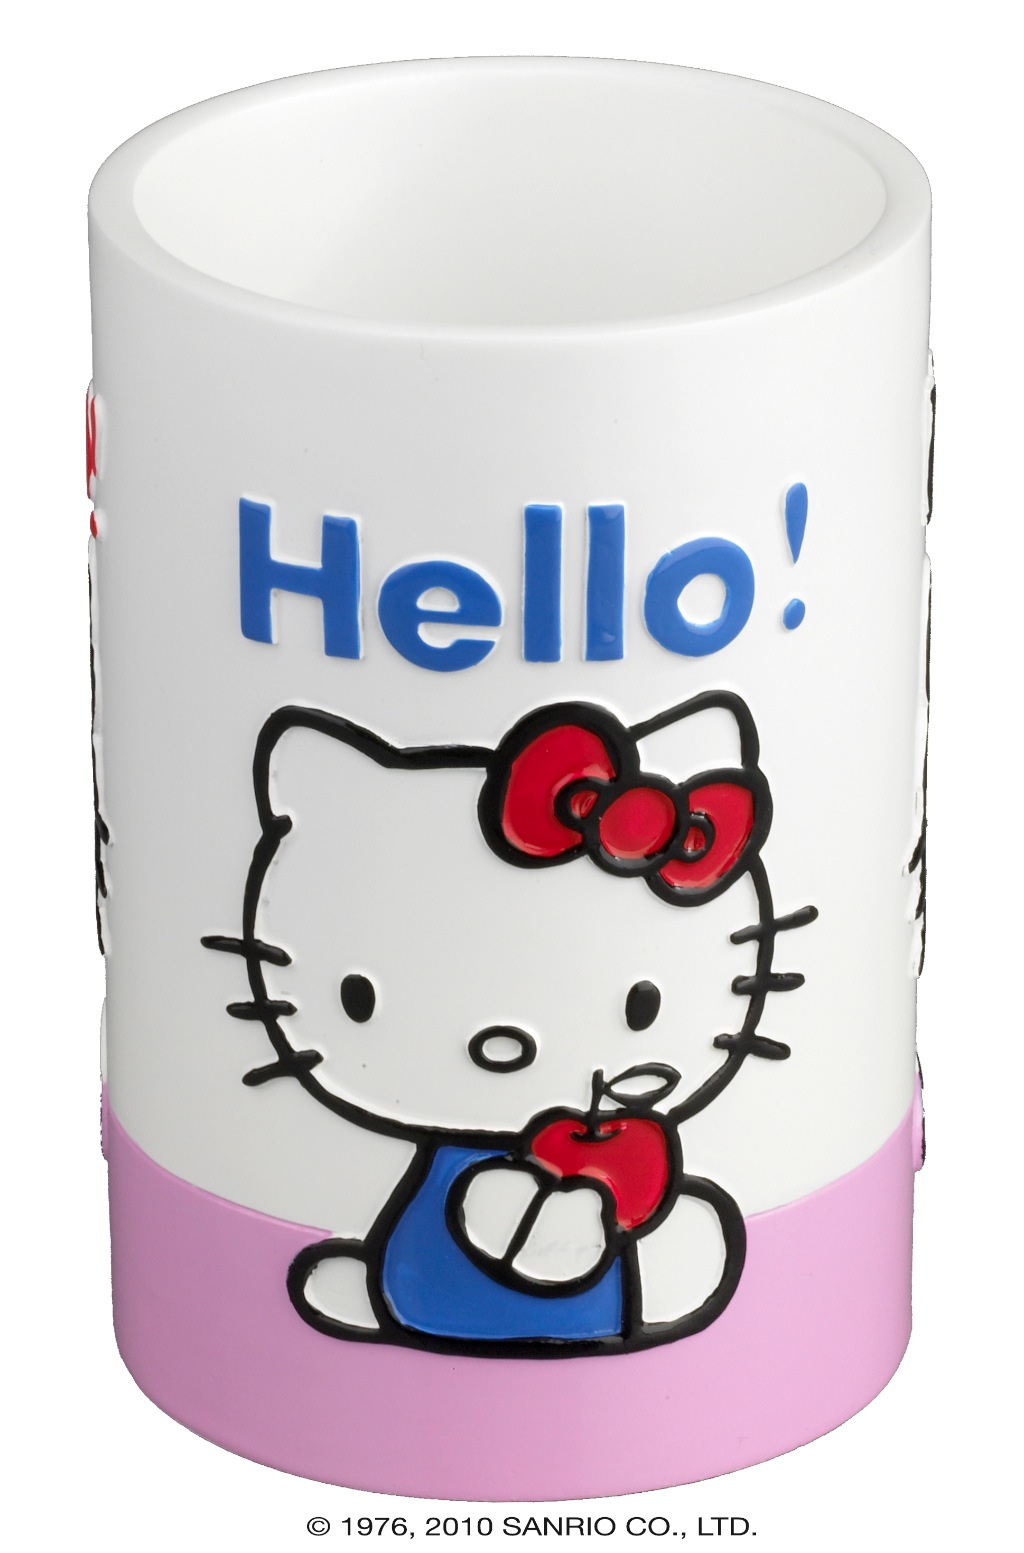 Hello kitty bathroom accessories - Tags Hello Kitty Hello Kitty Bathroom Accessories Hello Kitty Dish Soap Hello Kitty Shower Curtain Hello Kitty Showerhead Hello Kitty Soap Dispenser